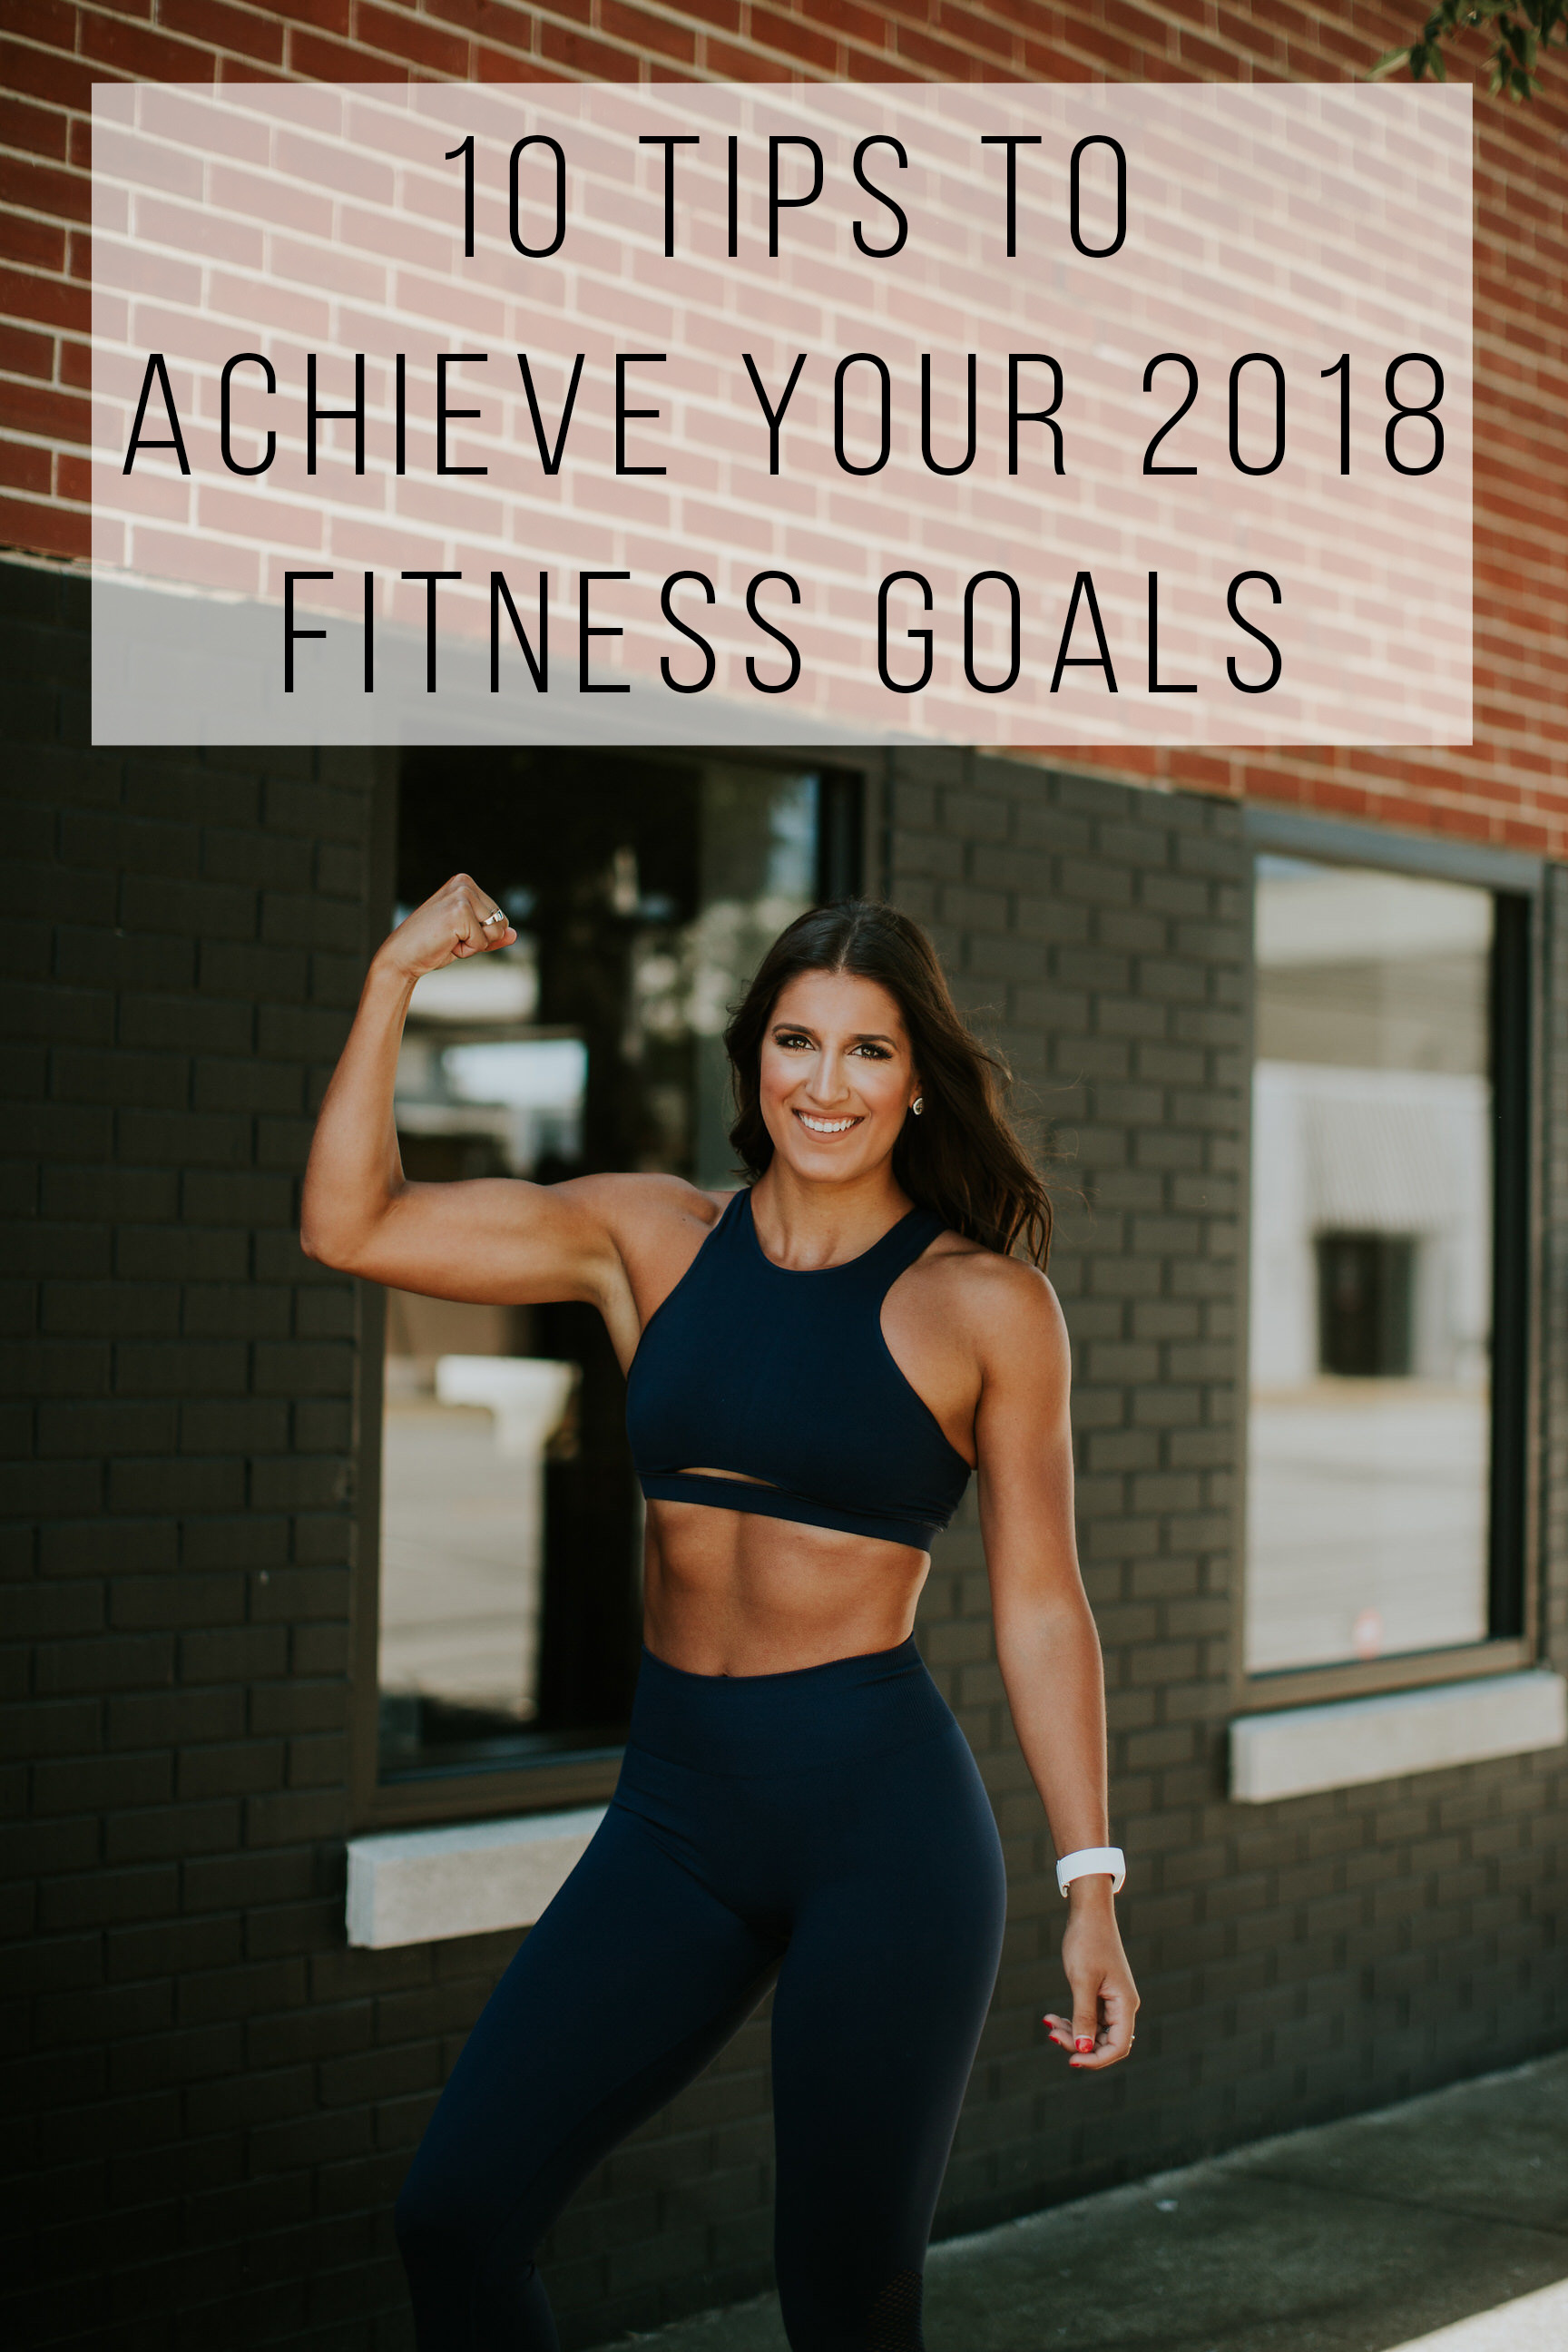 10 Tips To Achieve Your 2018 Fitness Goals A Southern Drawl